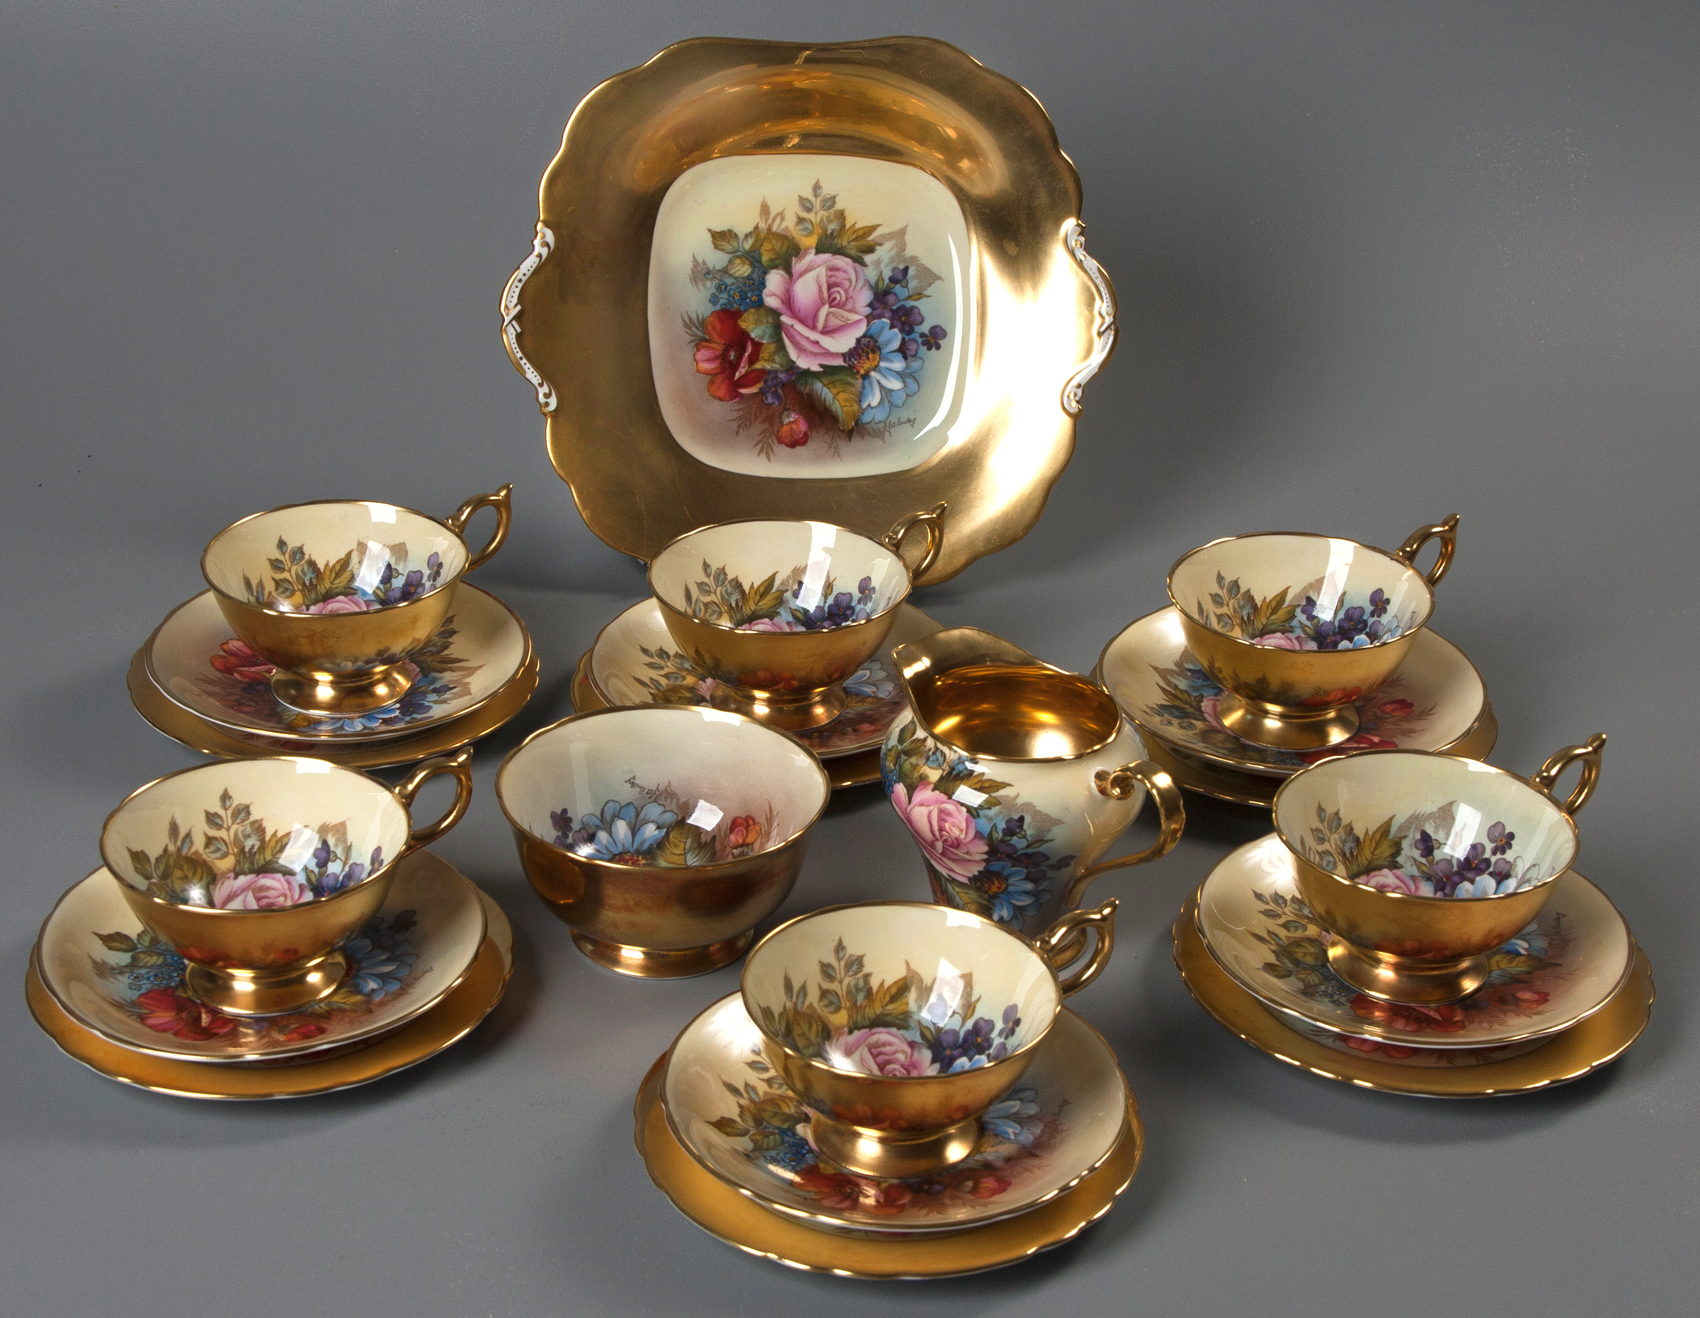 LOT 70 – A SET OF AYNSLEY BONE CHINA PAINTED BY JA BAILEY, CIRCA 1930